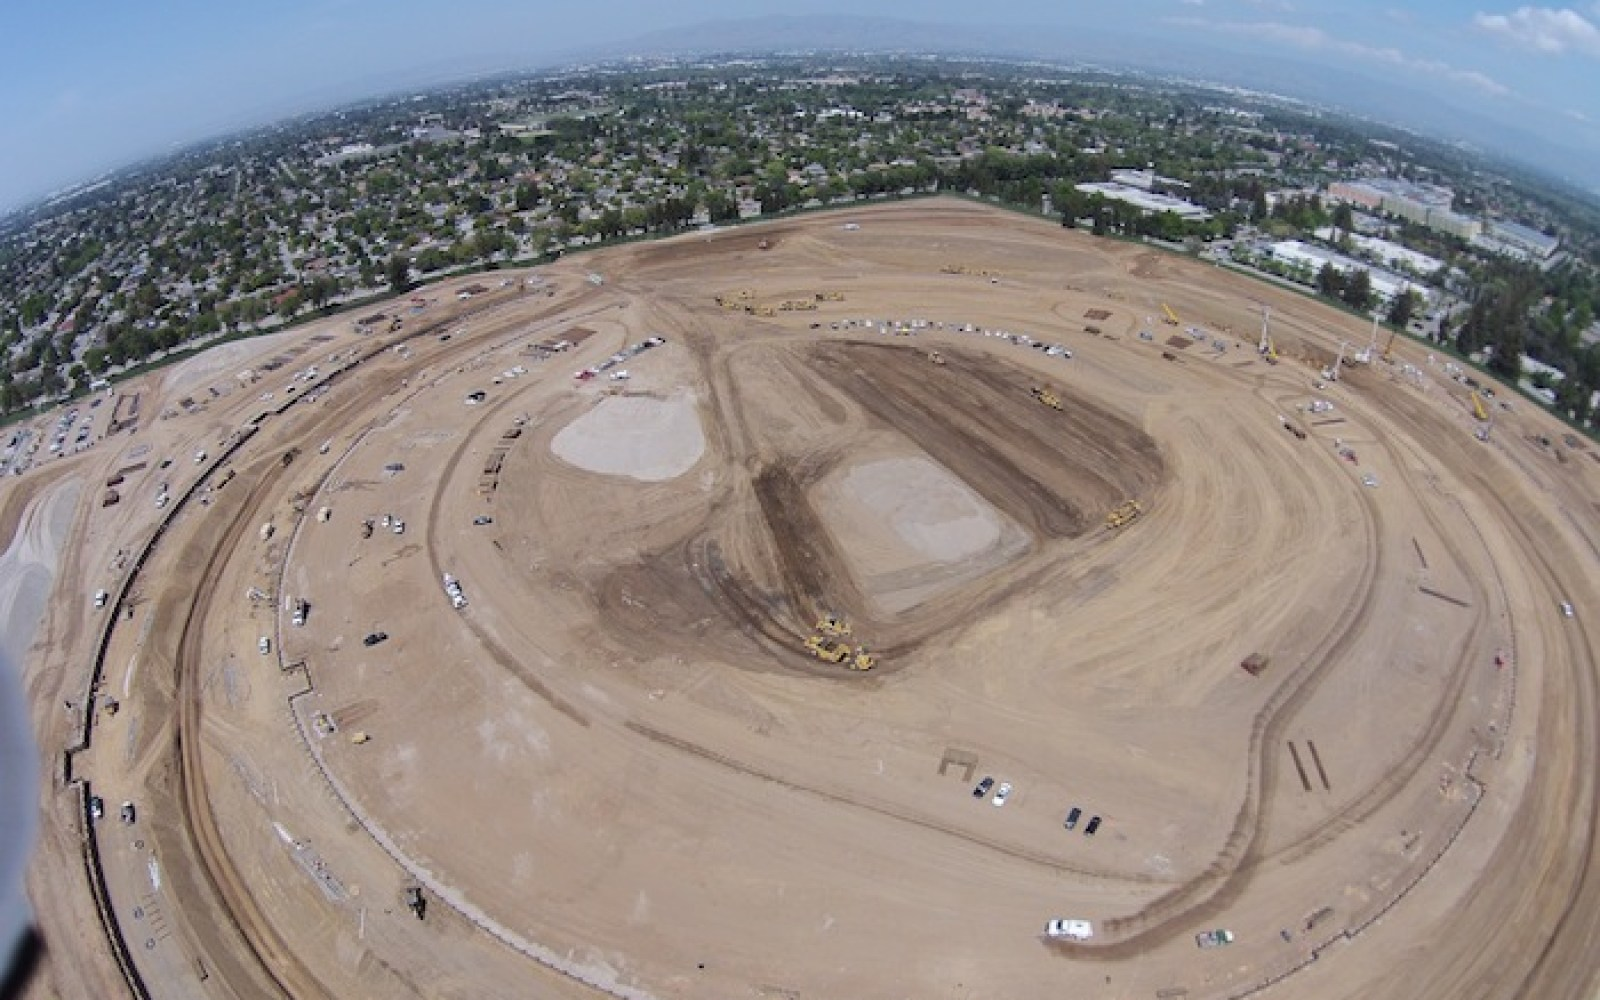 Footprint of Apple's 'spaceship' campus clearly visible in latest aerial photos